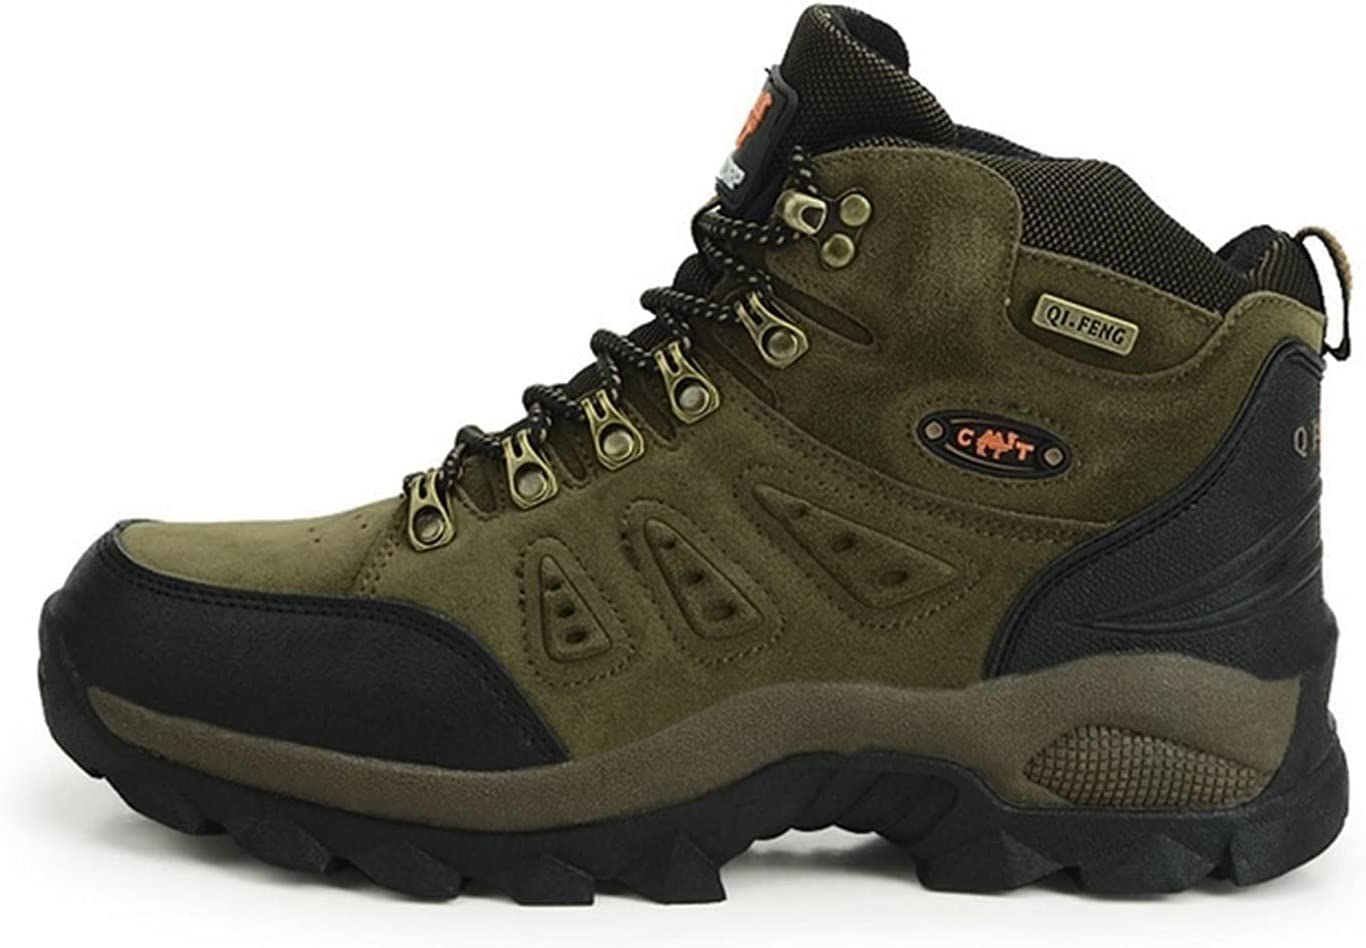 TTKK Max 80% OFF Classic Pro-Mountain Ankle Hiking Boots Out Couple Kansas City Mall MenWomen